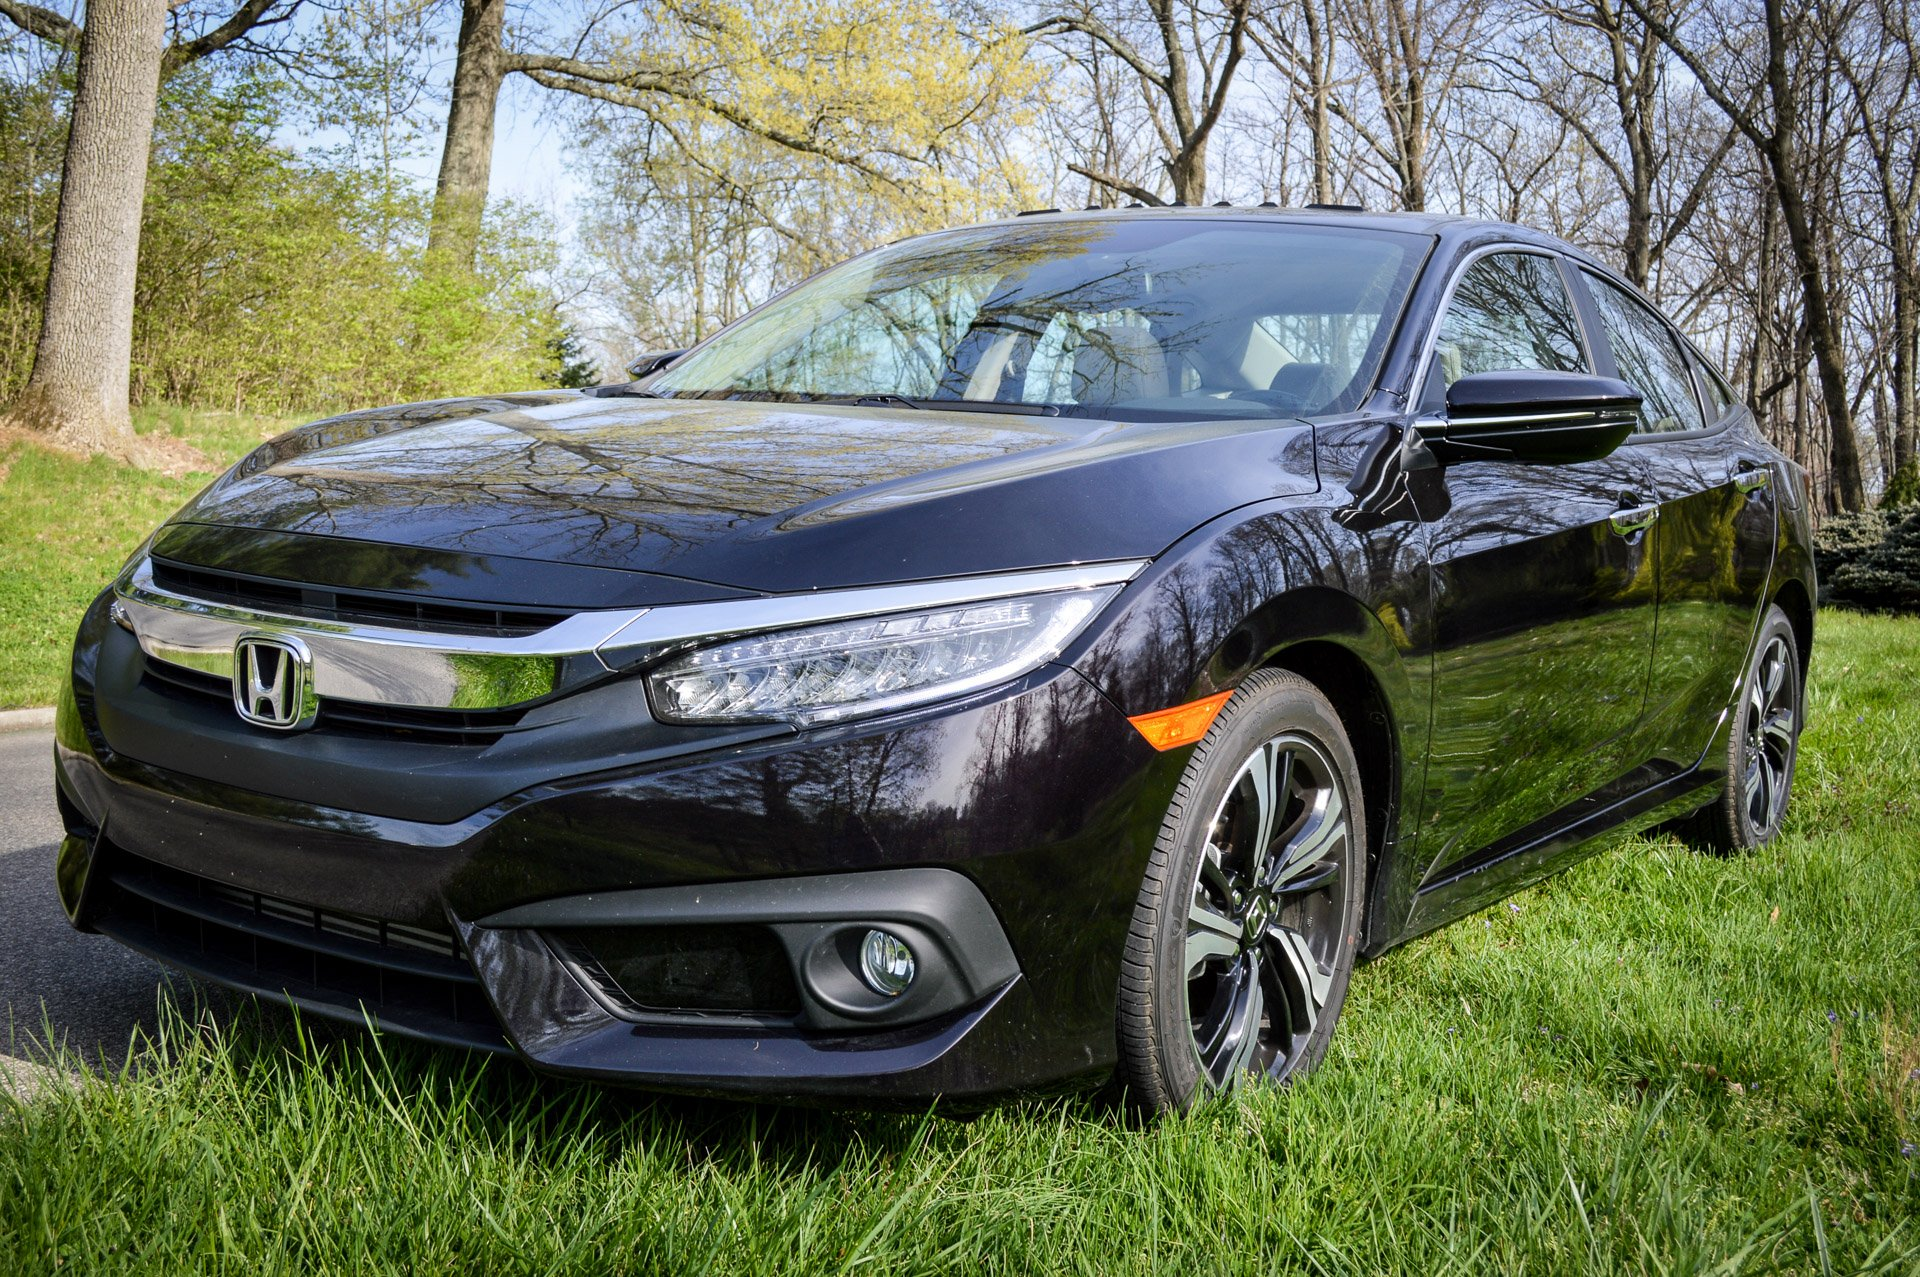 Review: 2016 Honda Civic Touring